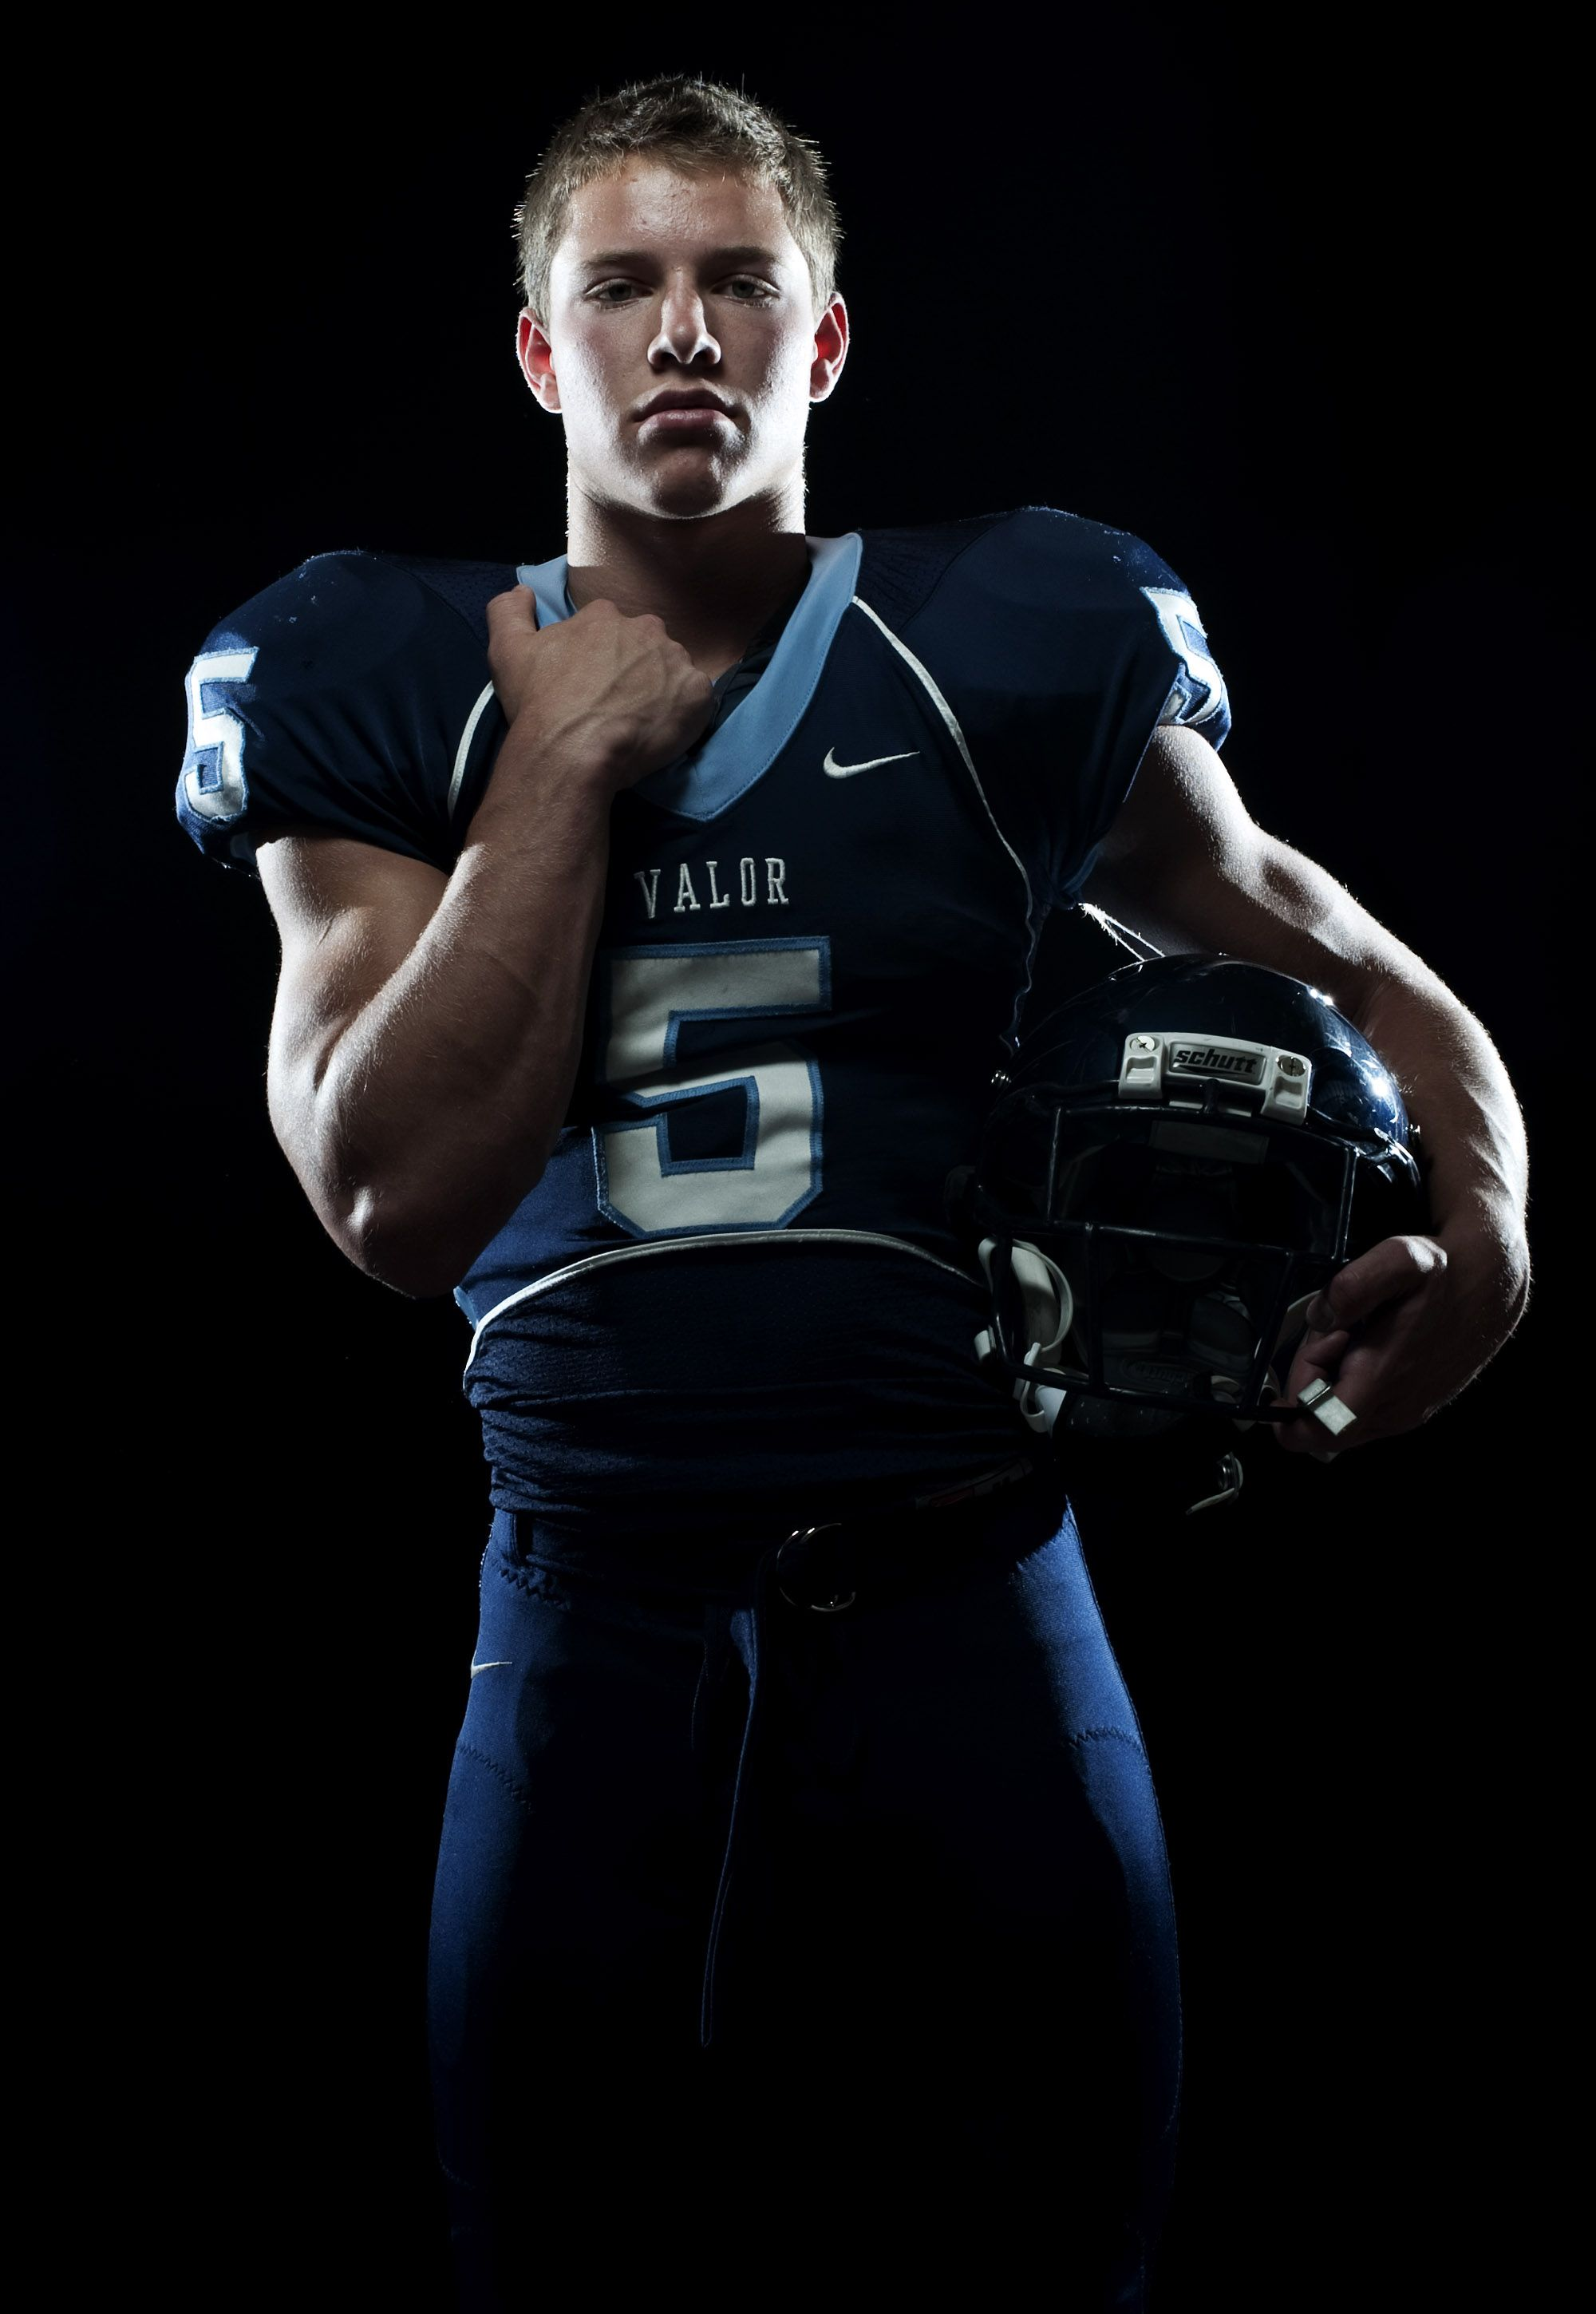 senior pictures football poses | ... football standouts ...